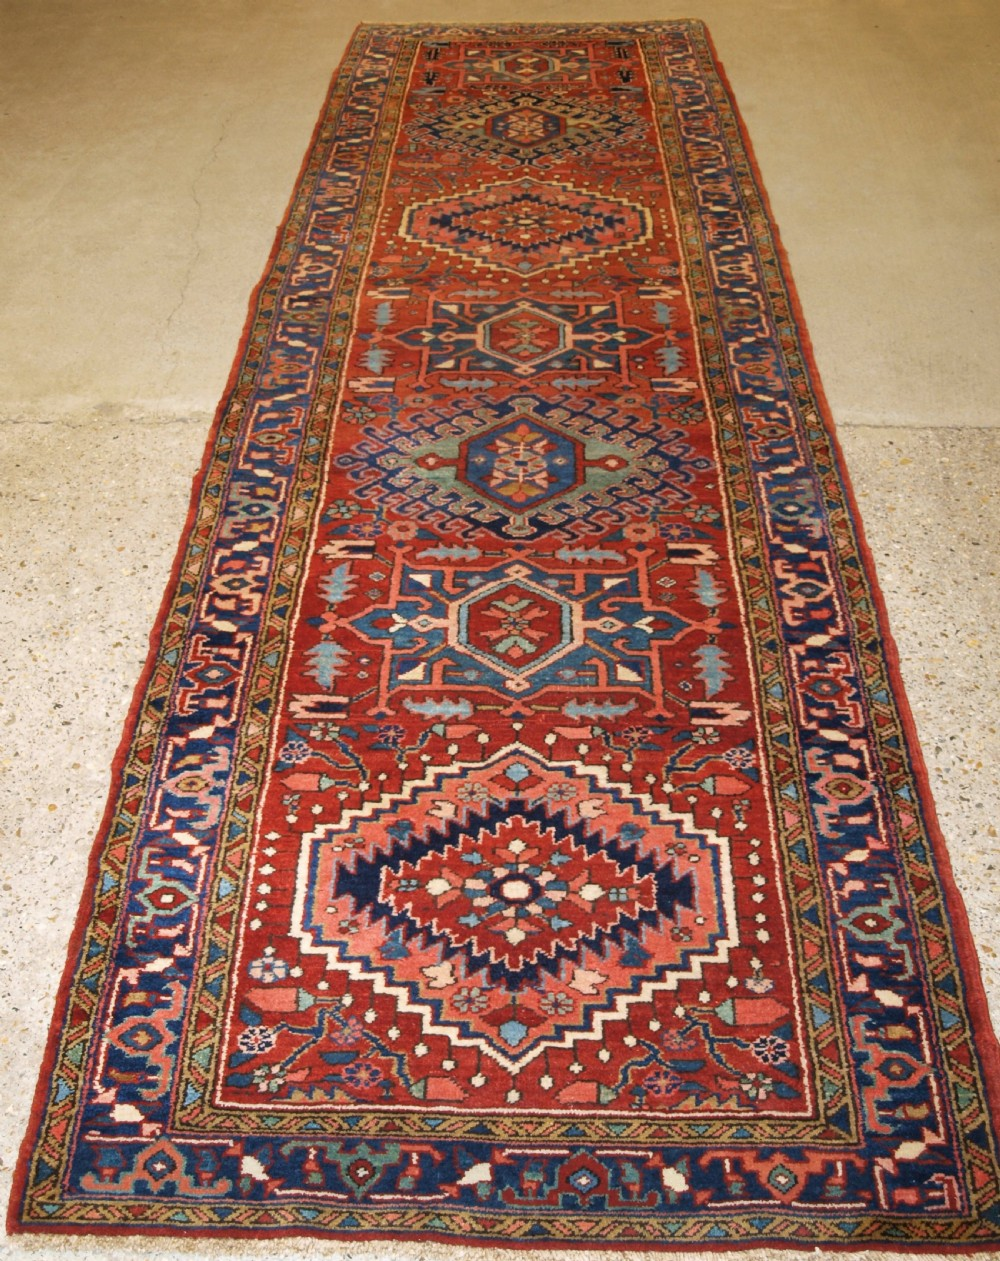 antique north west persian heriz runner excellent condition very hard wearing circa 190020